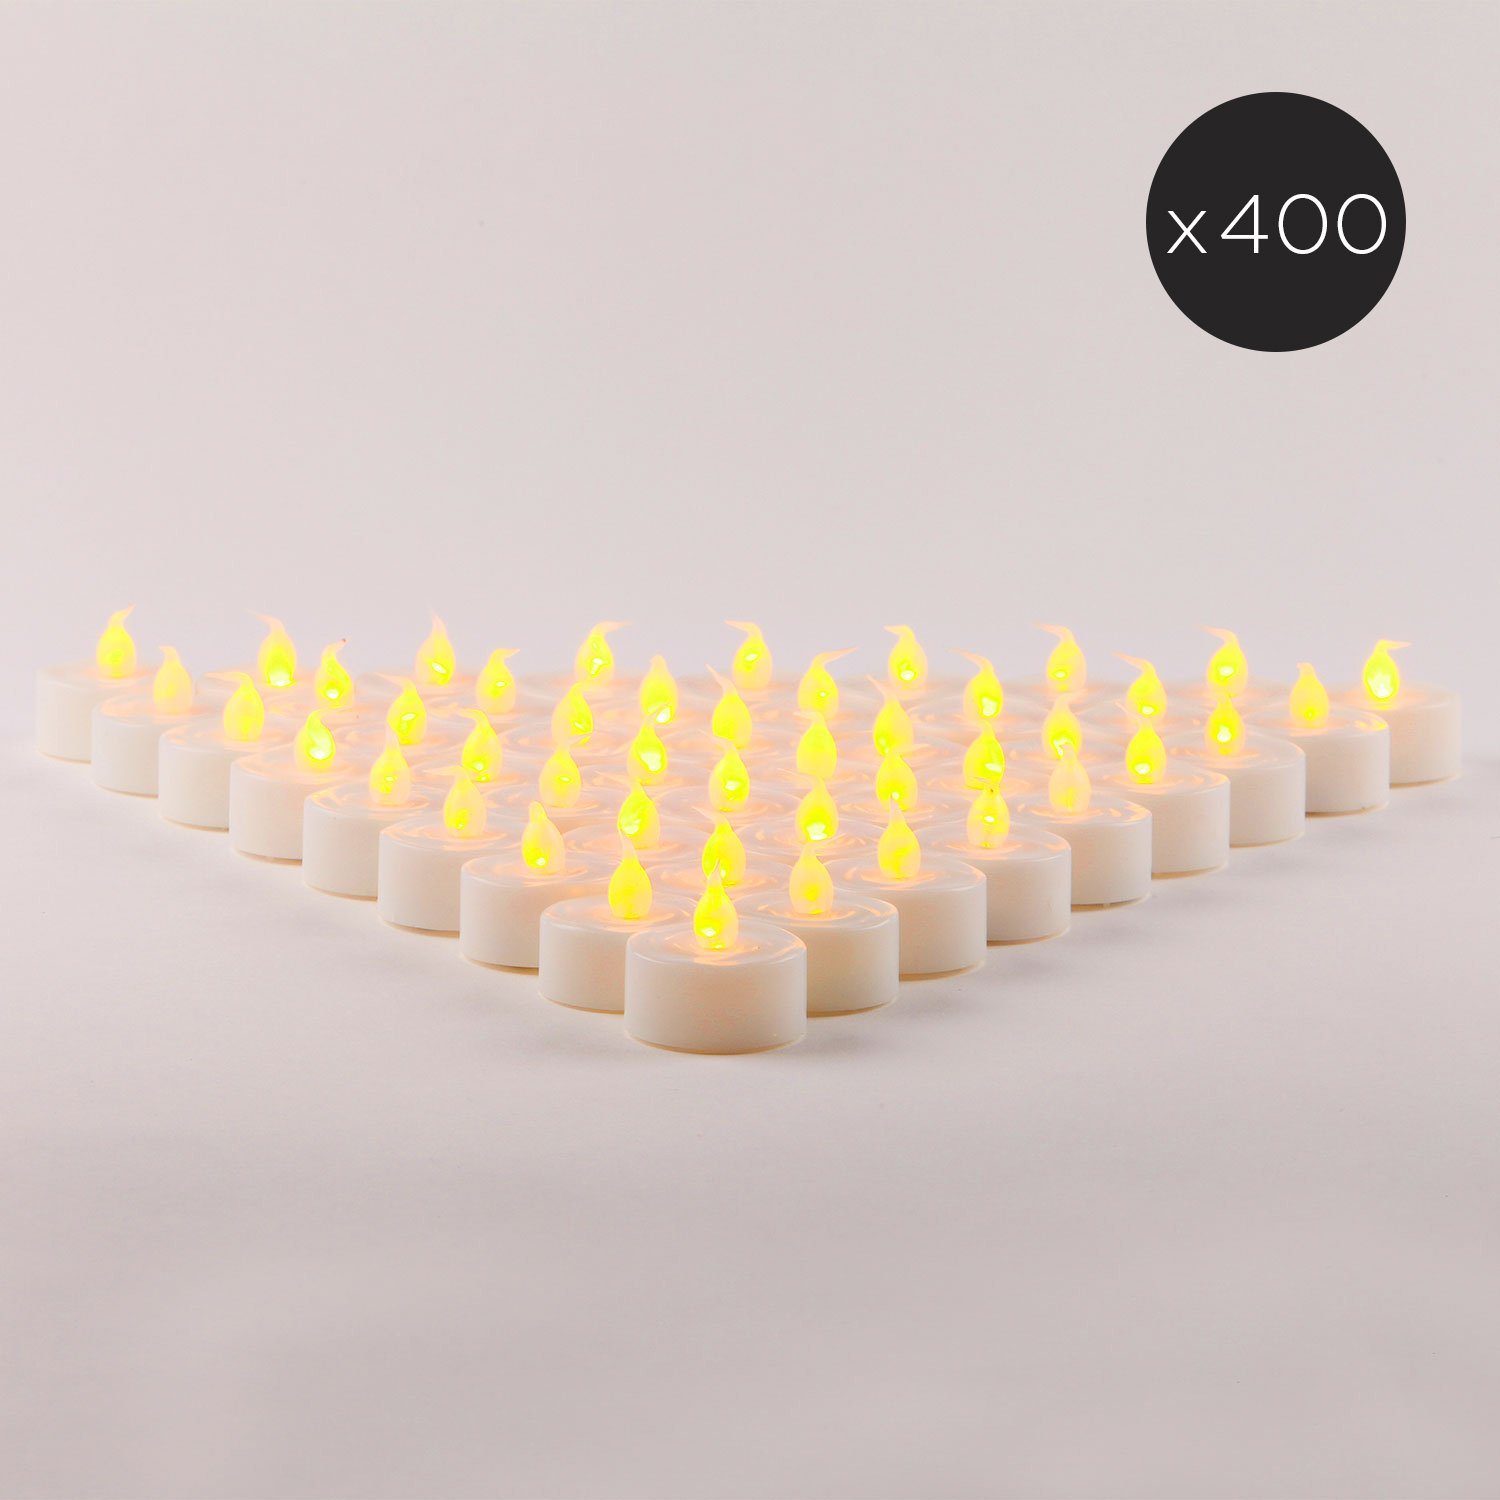 400 White Flameless Tea Lights | Bulk Value Set | Amber LEDs, Resin, Indoor & Outdoor Use, All Batteries Included by LampLust